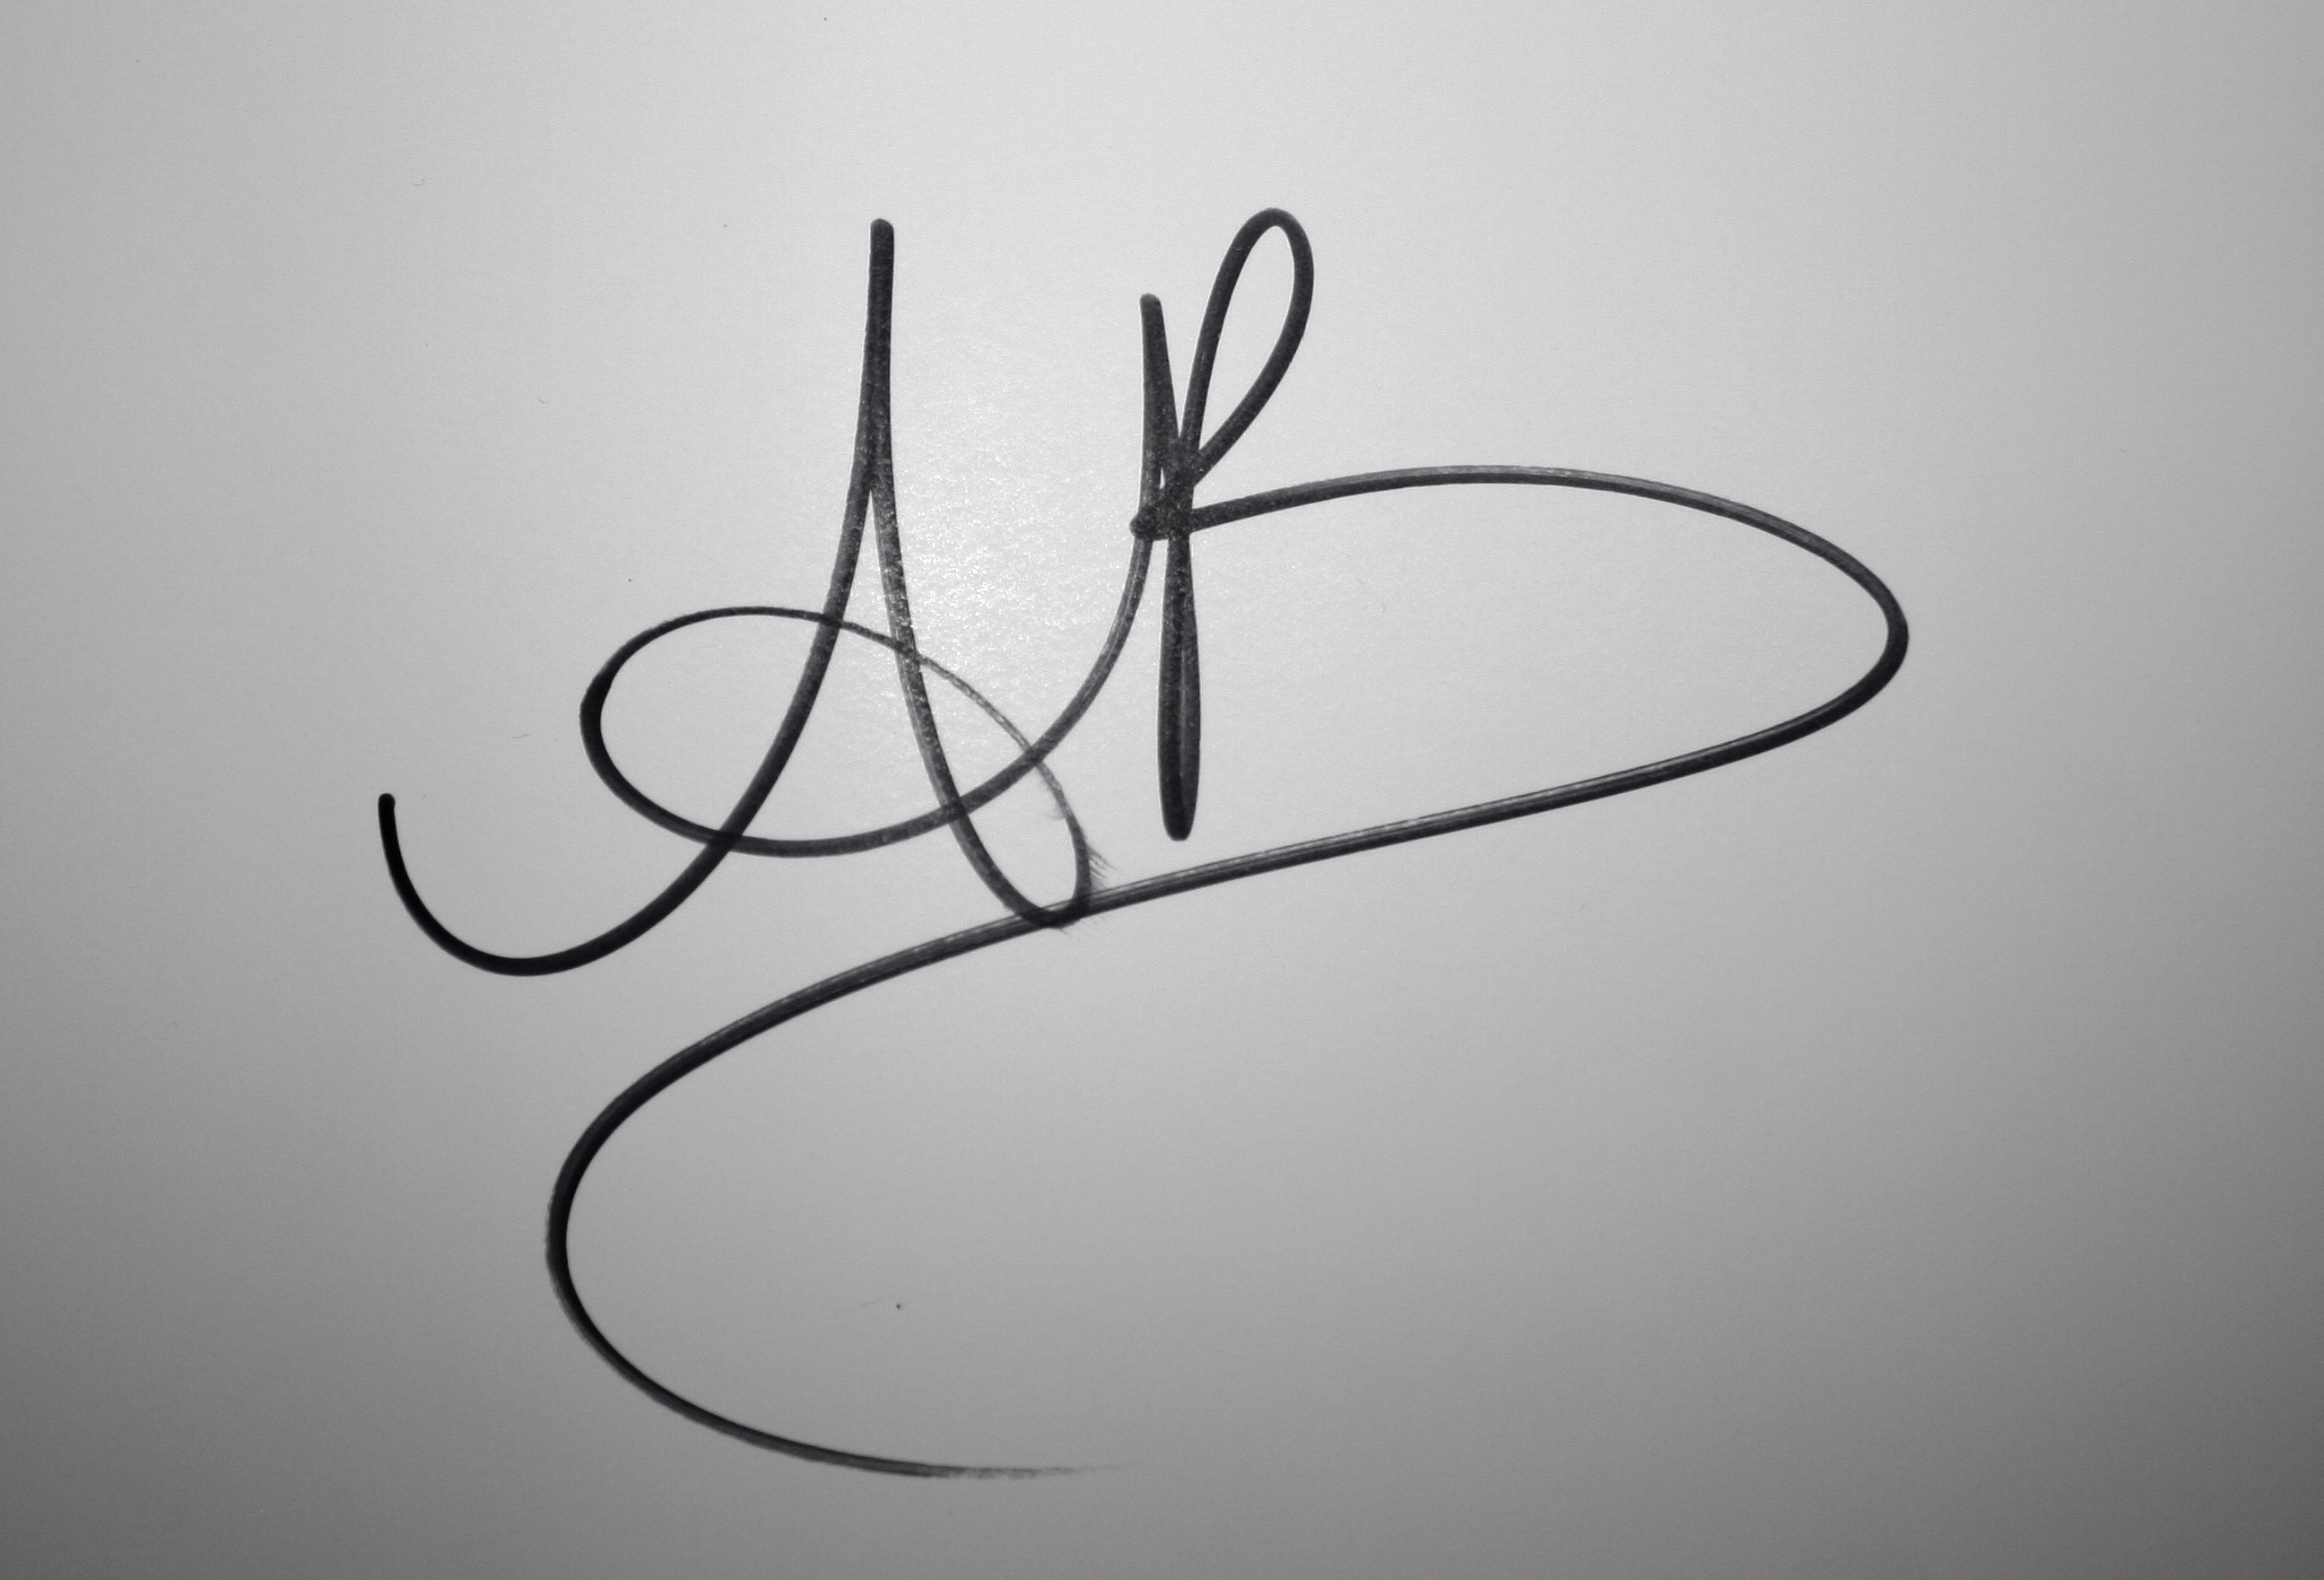 ALyssa Bette's Signature